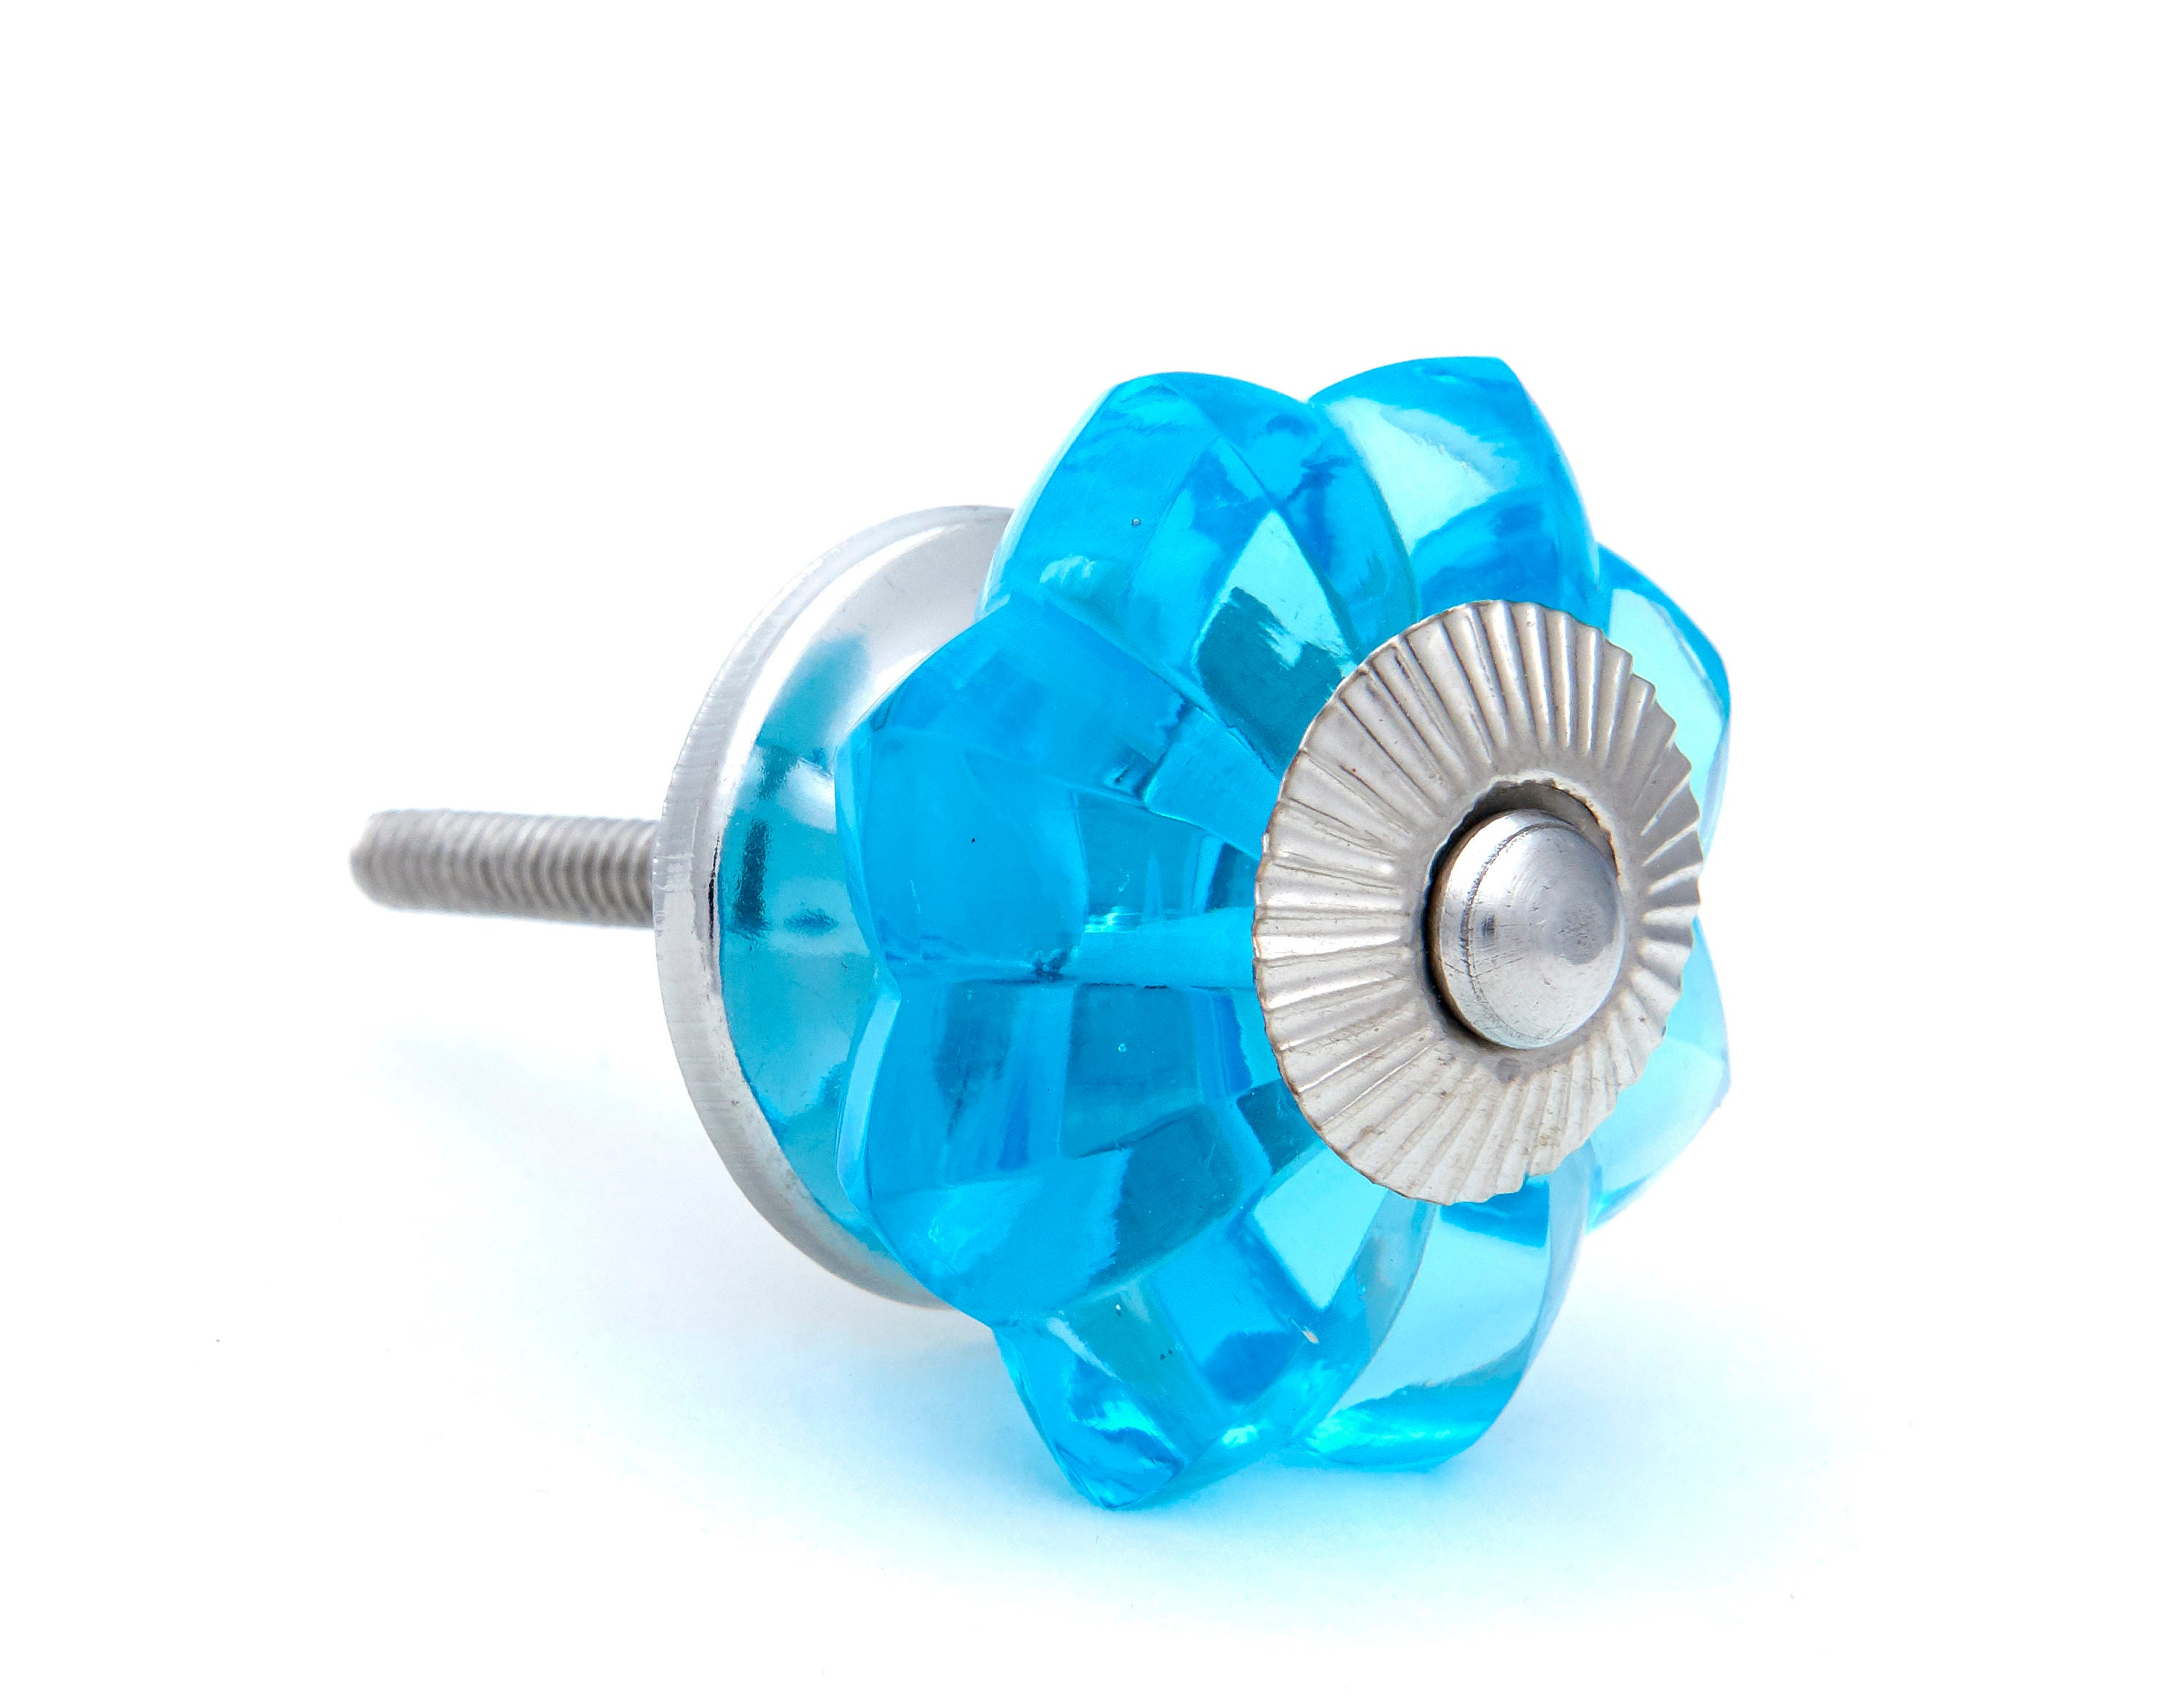 Blue Glass Kitchen Cabinet Pulls, Dresser Knobs with Polished Chrome ...